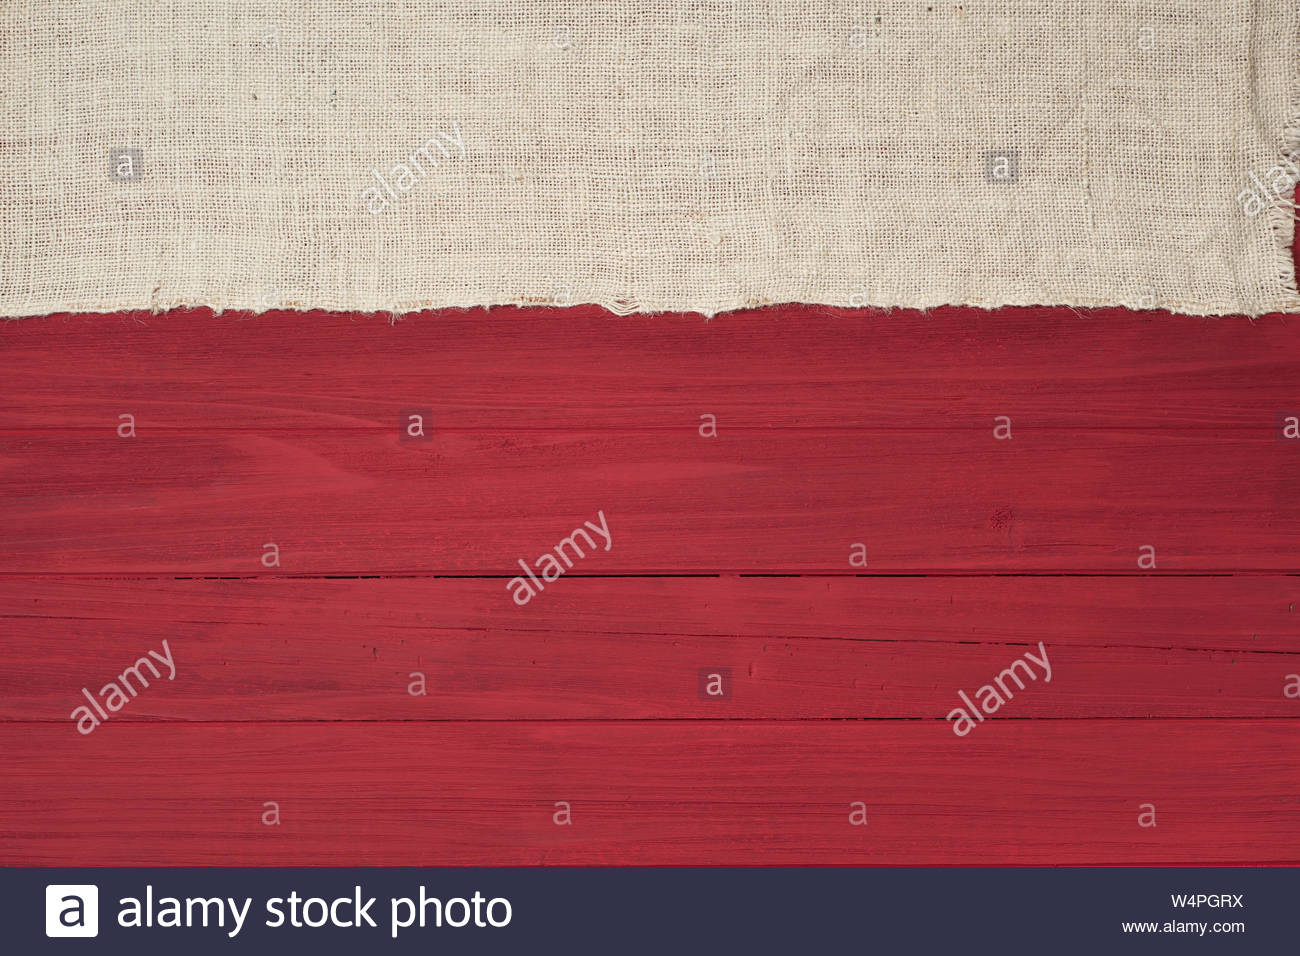 Rustic Red Wood Boards in Flat layout with off white Burlap fabric